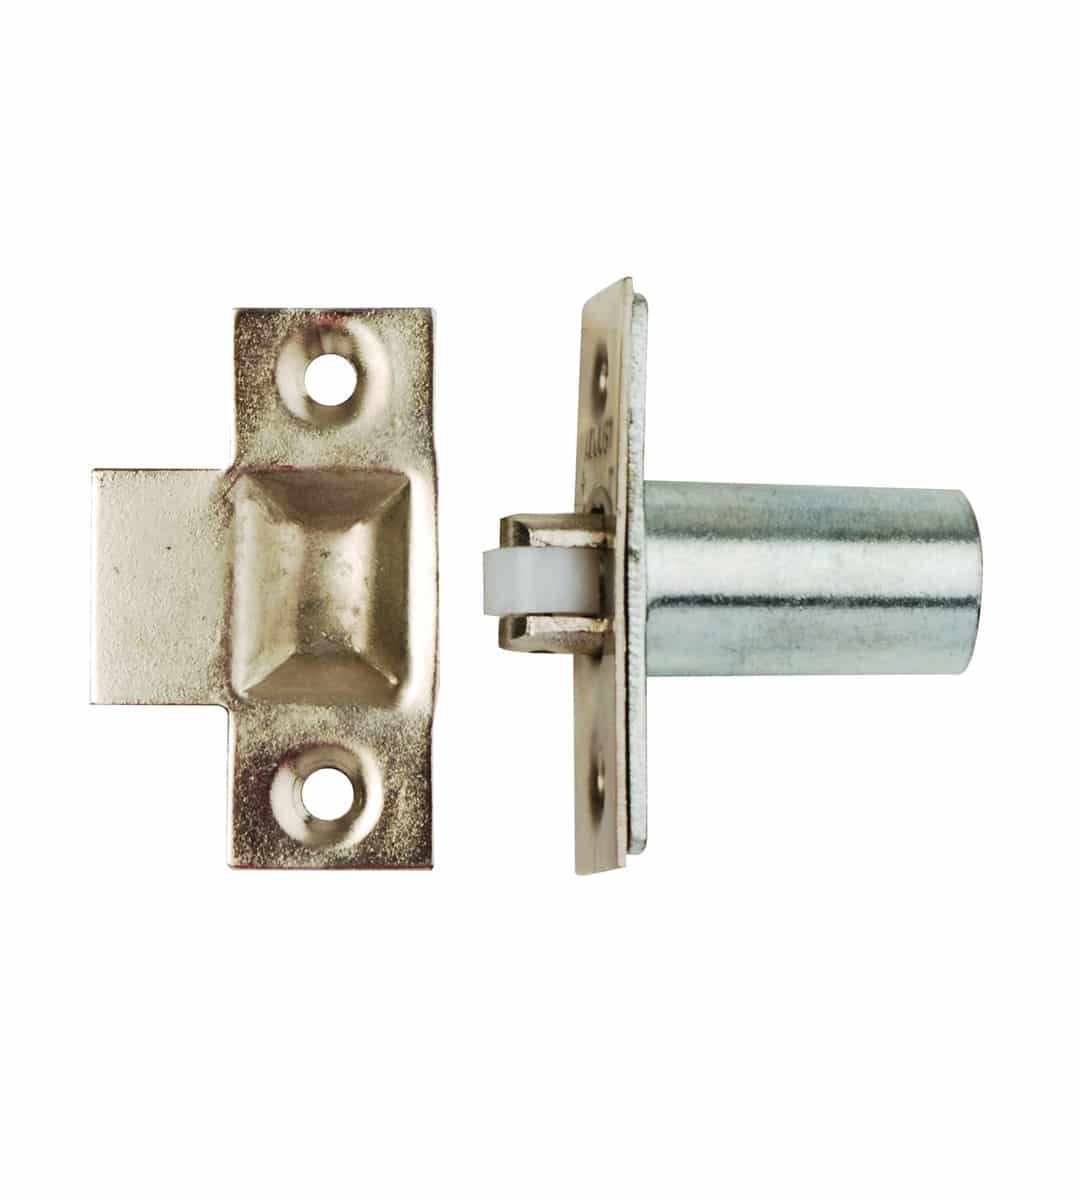 Adjustable Roller Catch Nickel